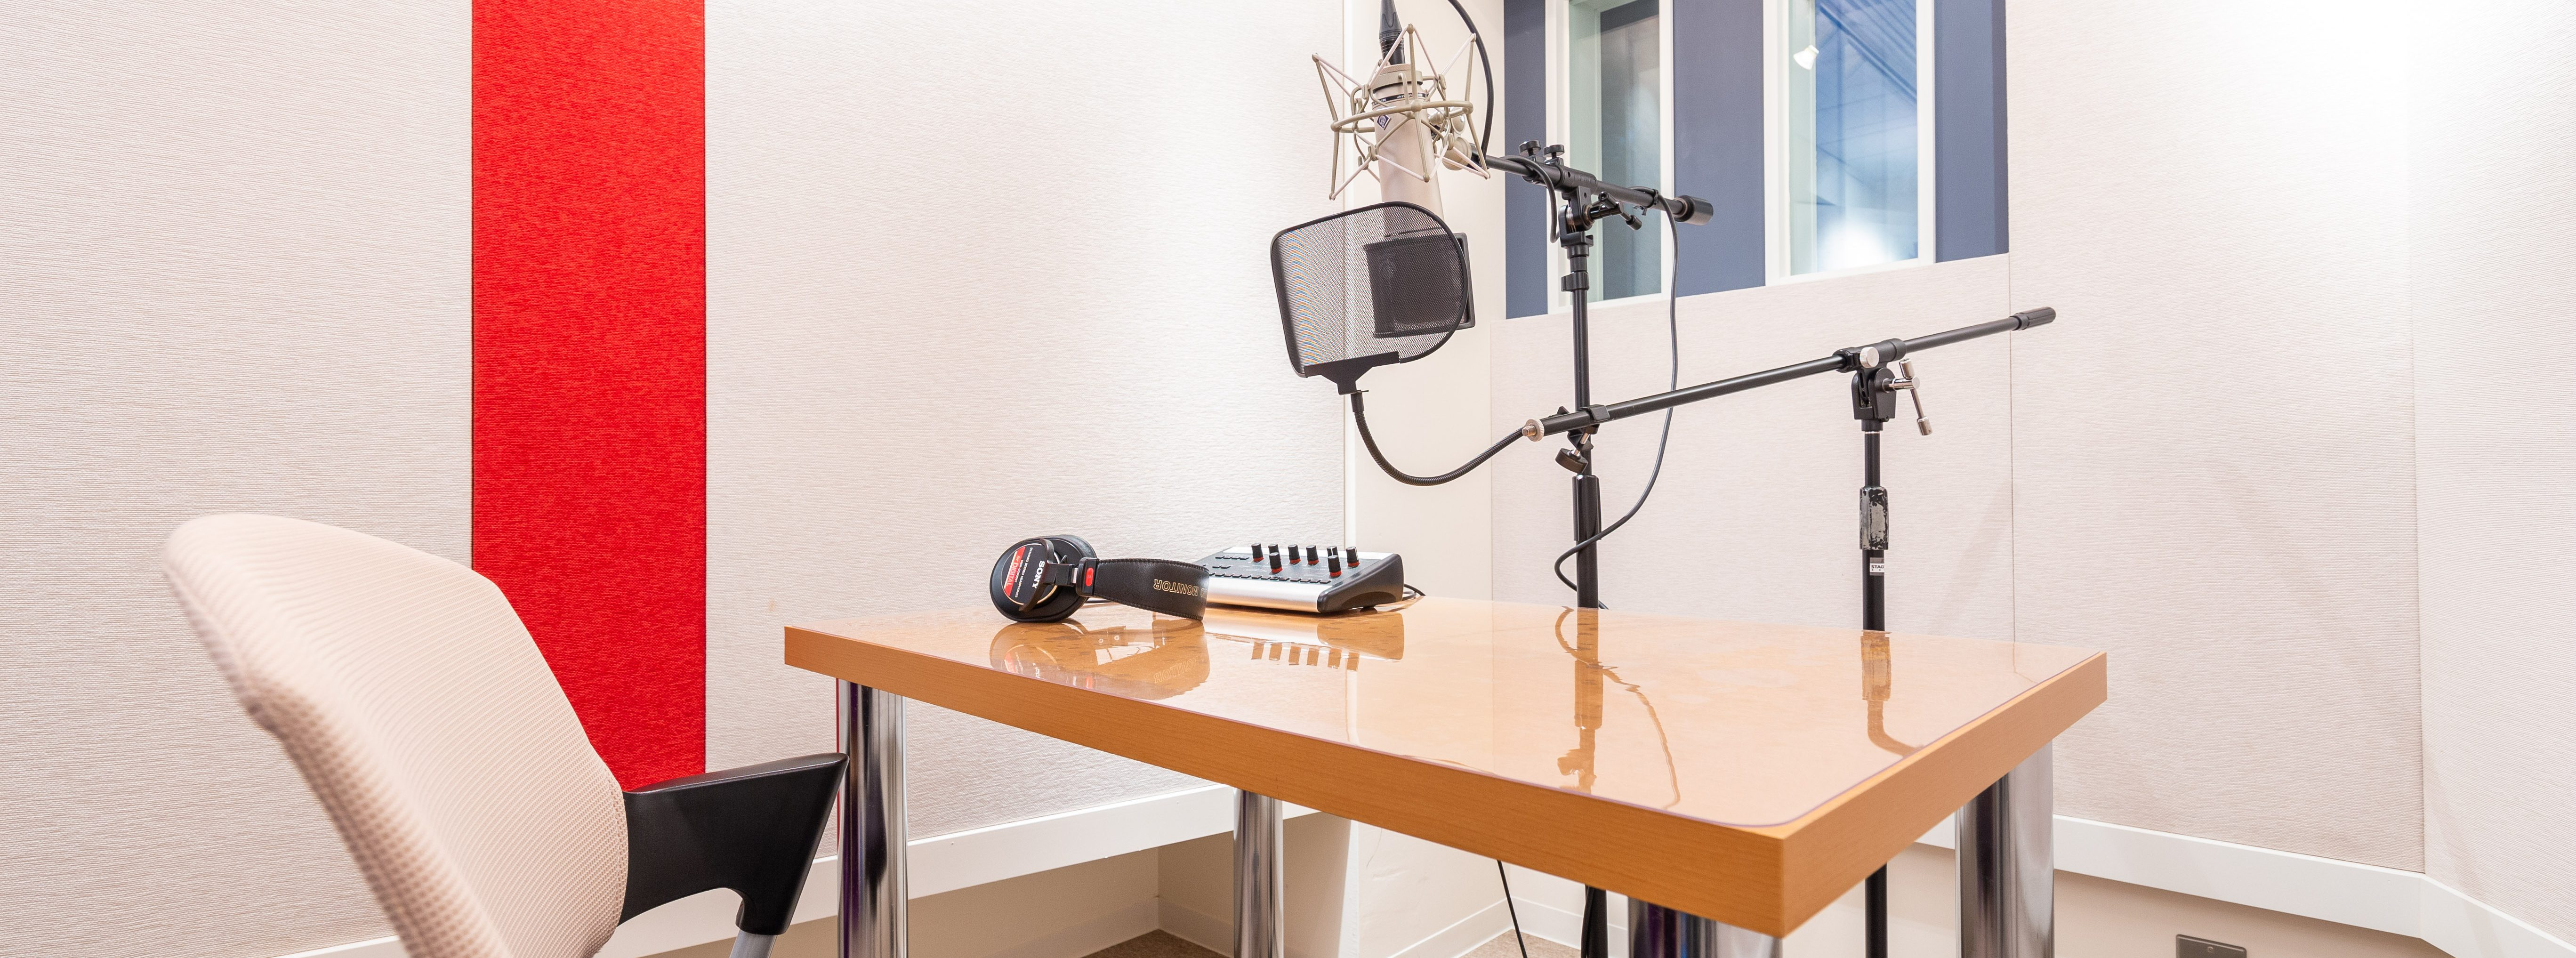 2nd STUDIO Booth